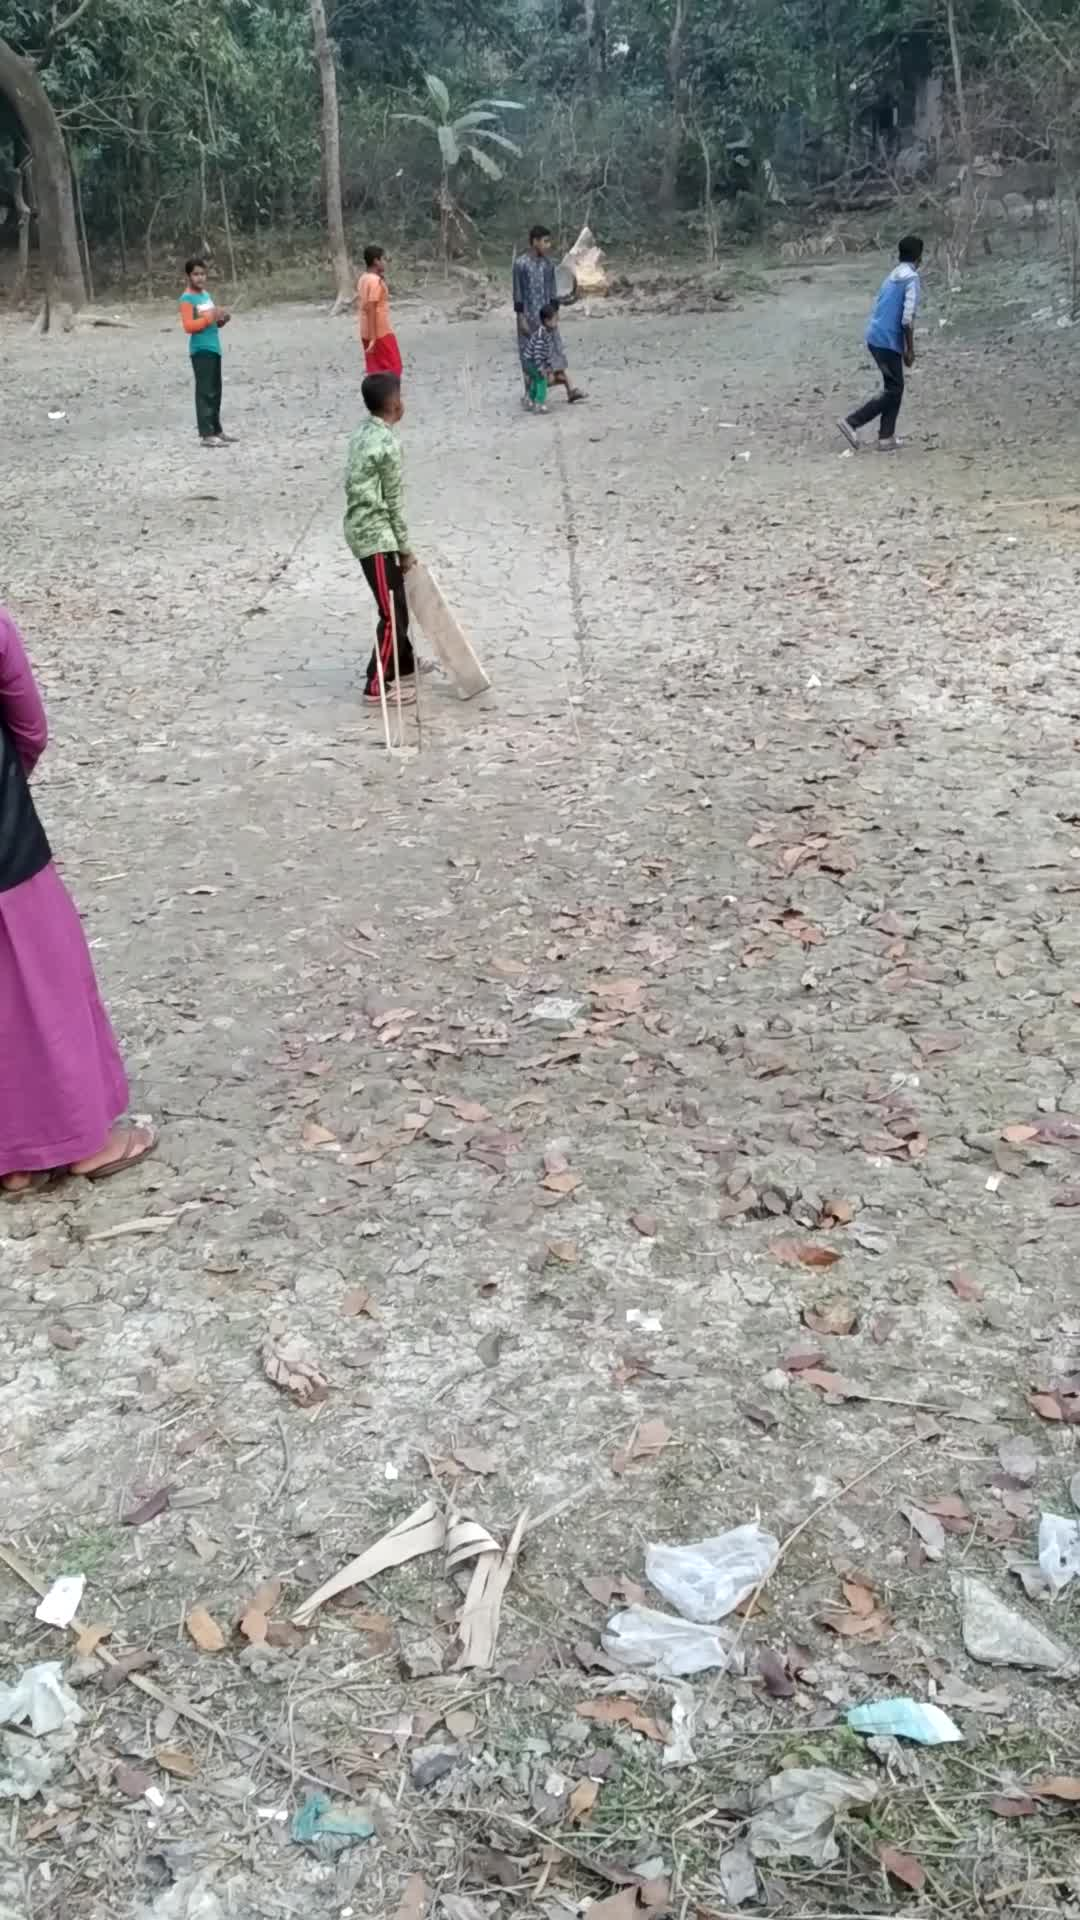 A video of a cricket match